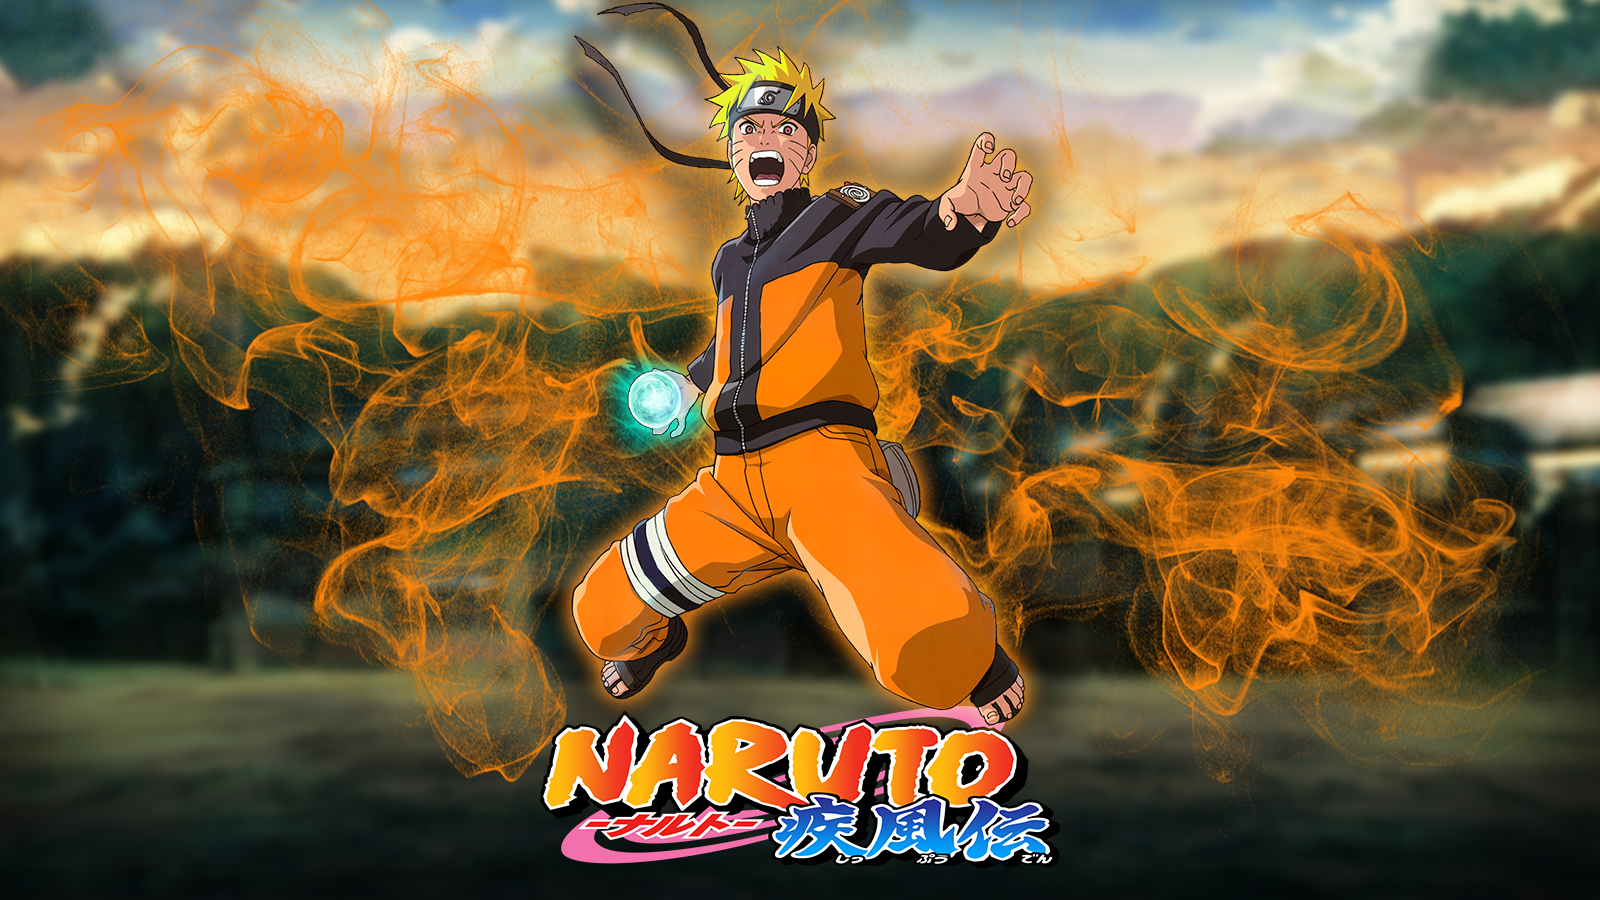 Naruto fond d 39 cran and arri re plan 1600x900 id 796106 for Fond ecran naruto